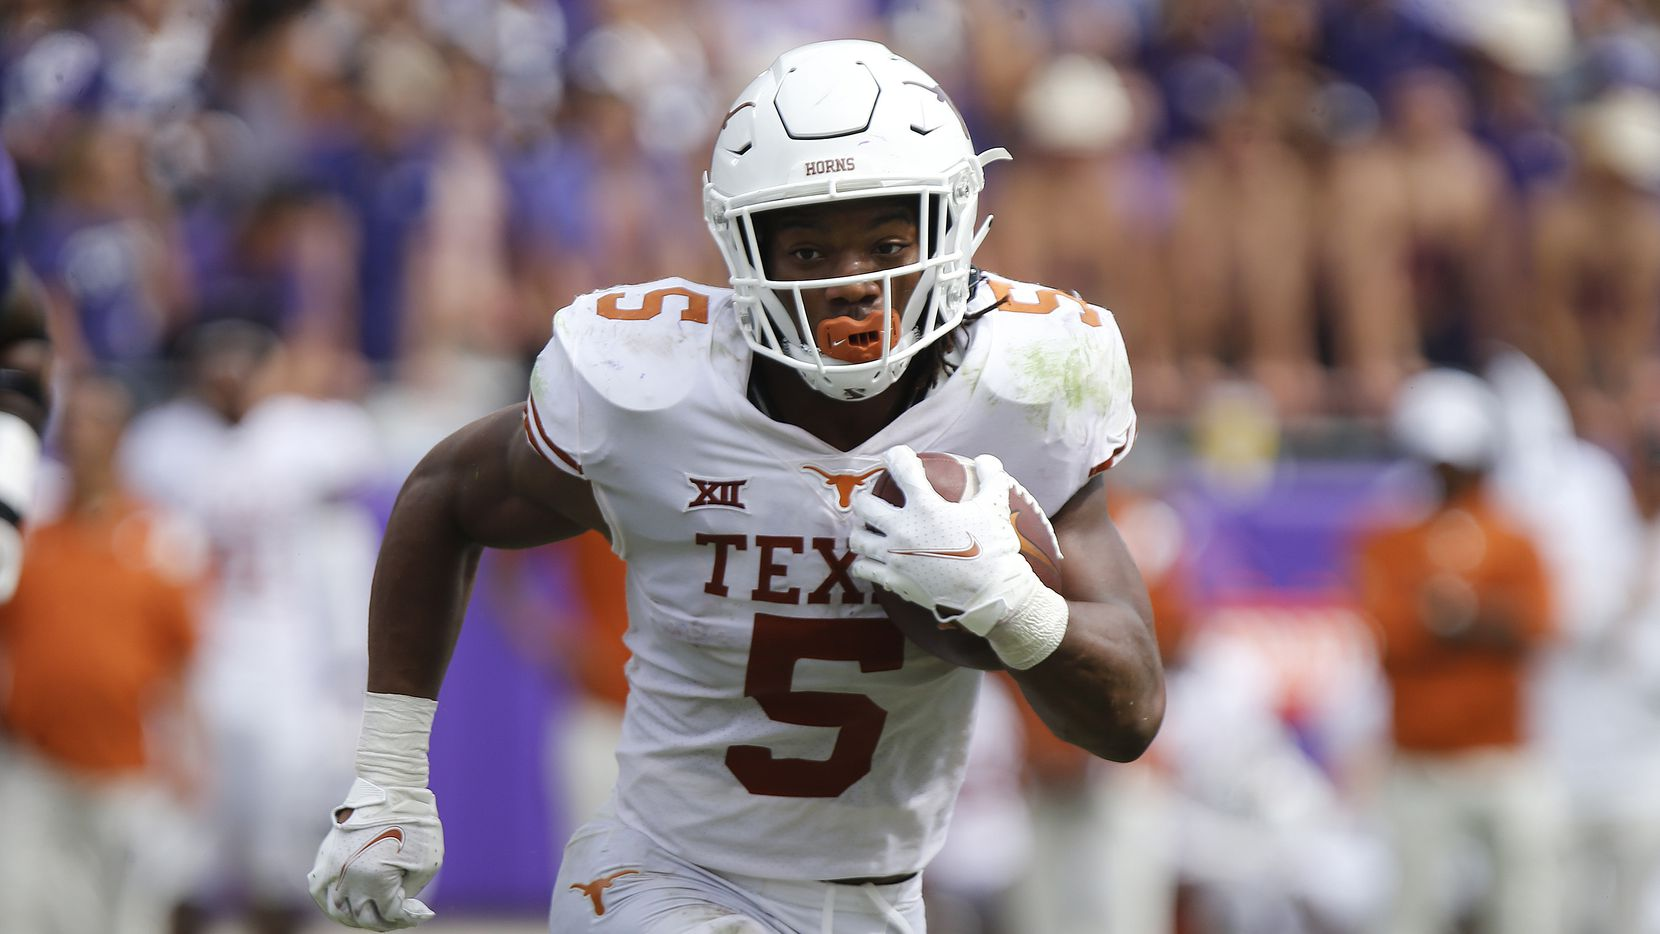 Texas Longhorns running back Bijan Robinson (5) carries the ball for a first down during the second half as the TCU Horned Frogs hosted the Texas Longhorns on Saturday, October 2, 2021, at Amon G Carter Stadium in Fort Worth.